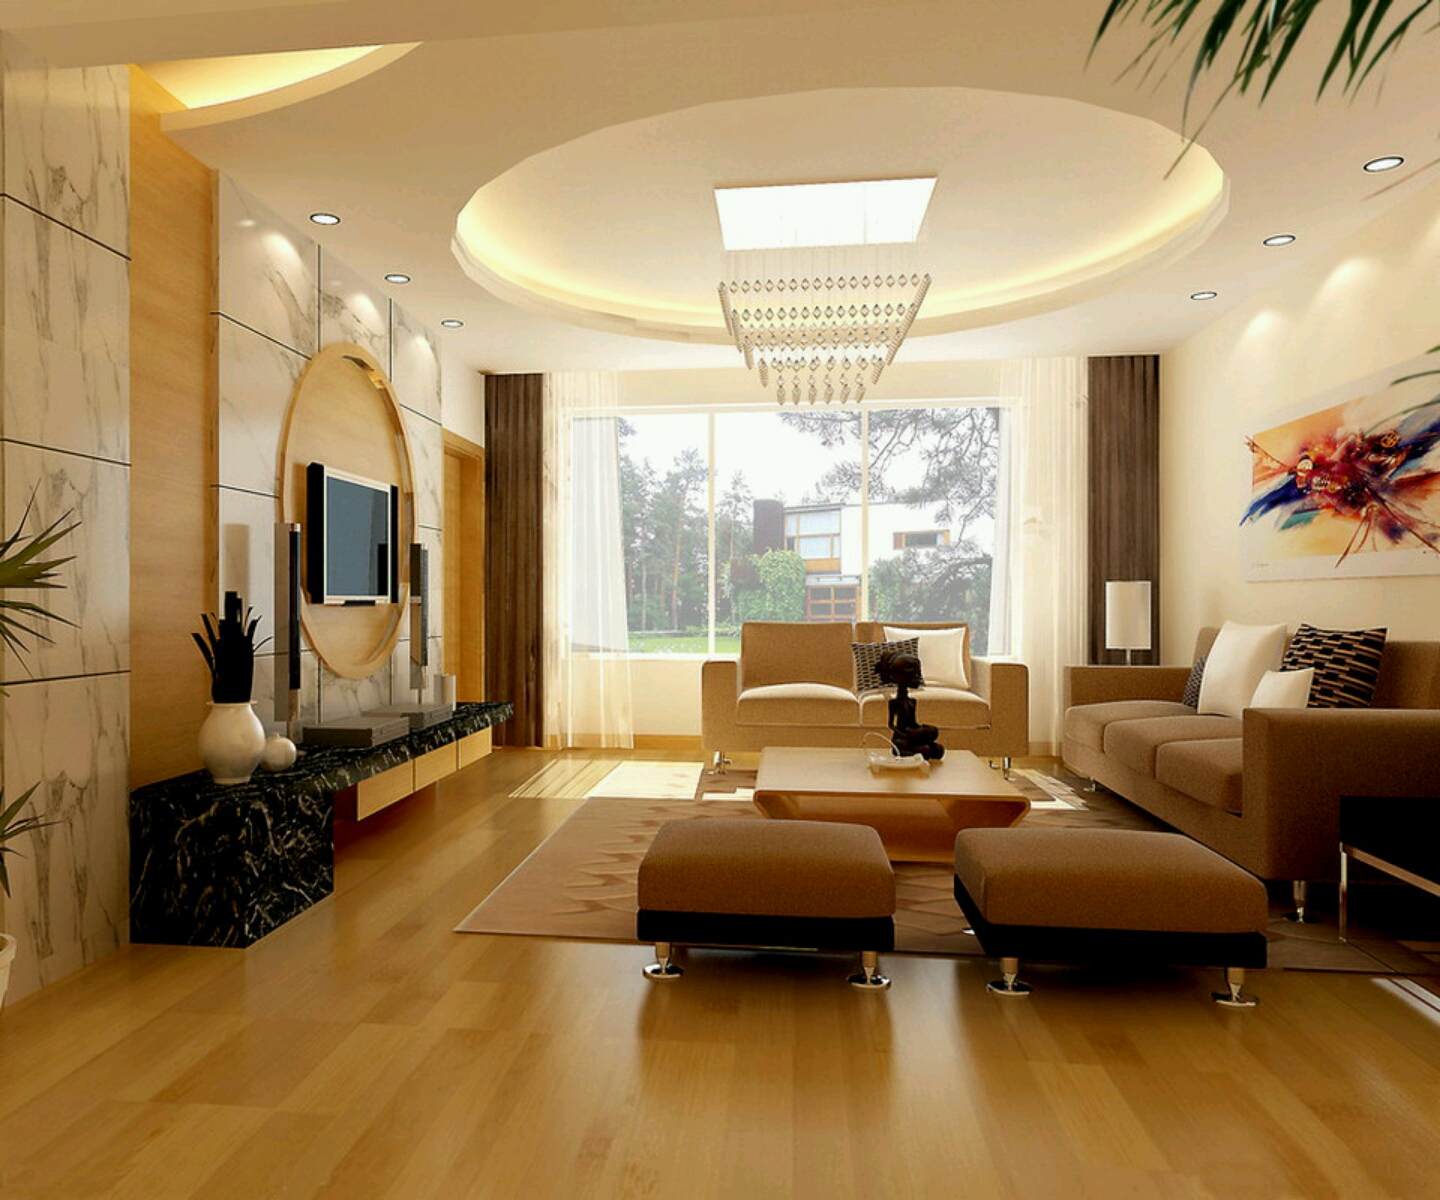 Modern interior decoration living rooms ceiling designs for Drawing room decoration images